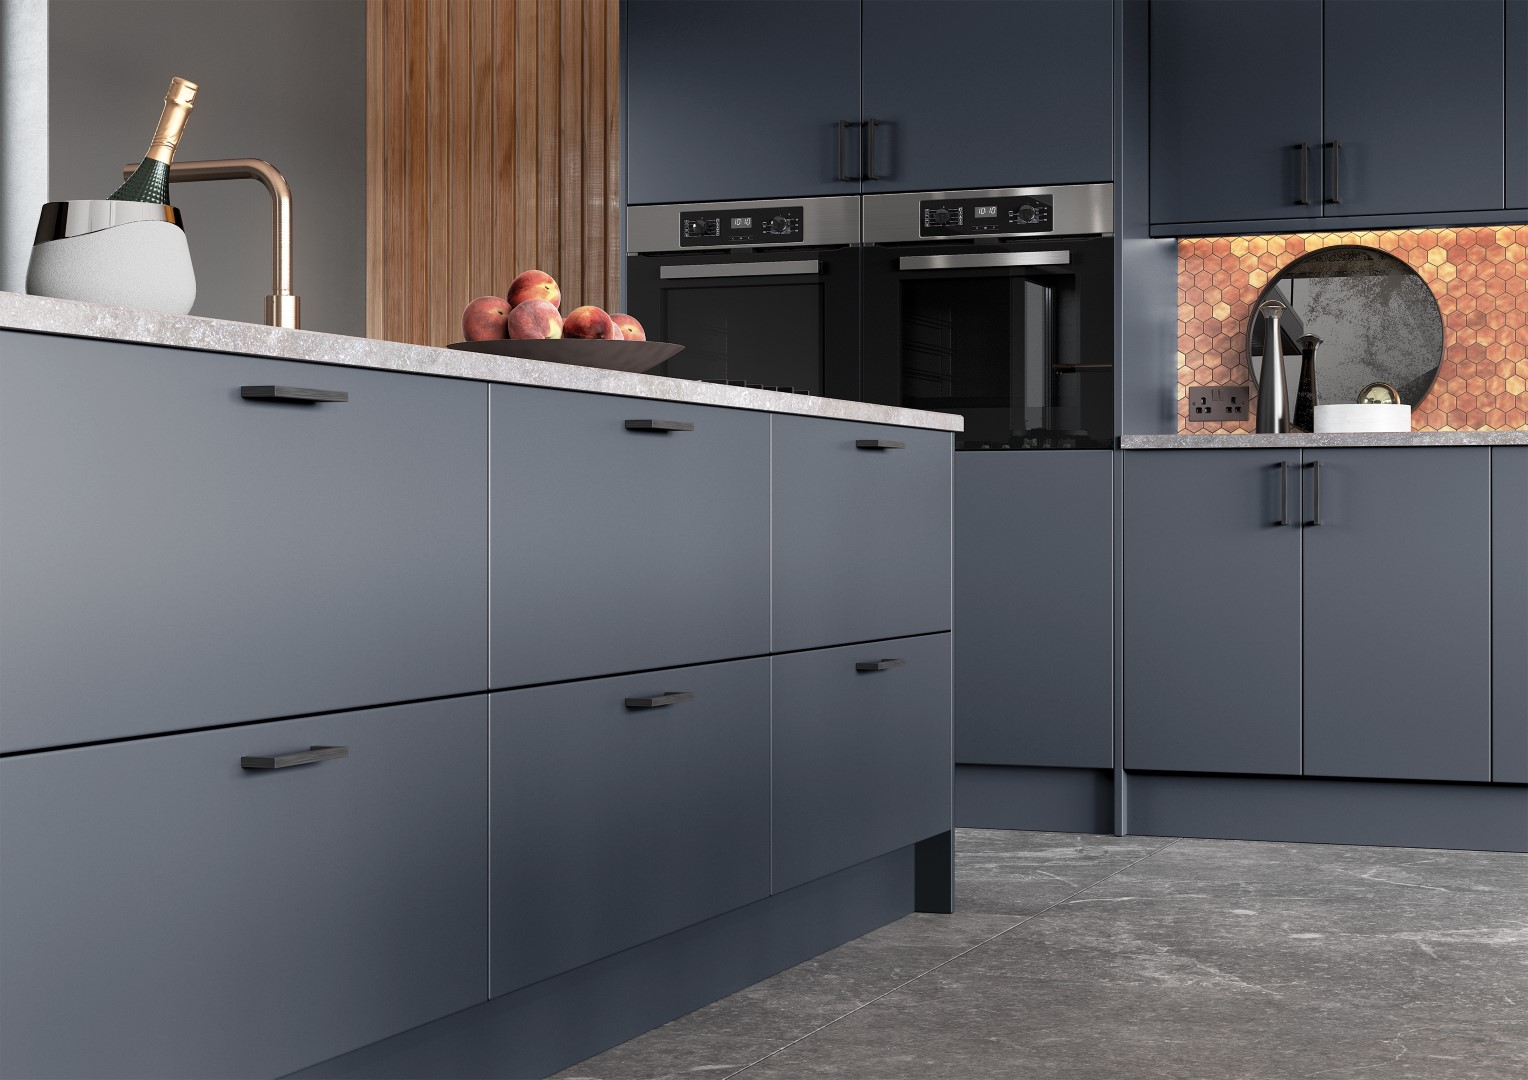 Zola Matte Slate Blue - Kitchen Design - Alan Kelly Kitchens - Waterford - 2